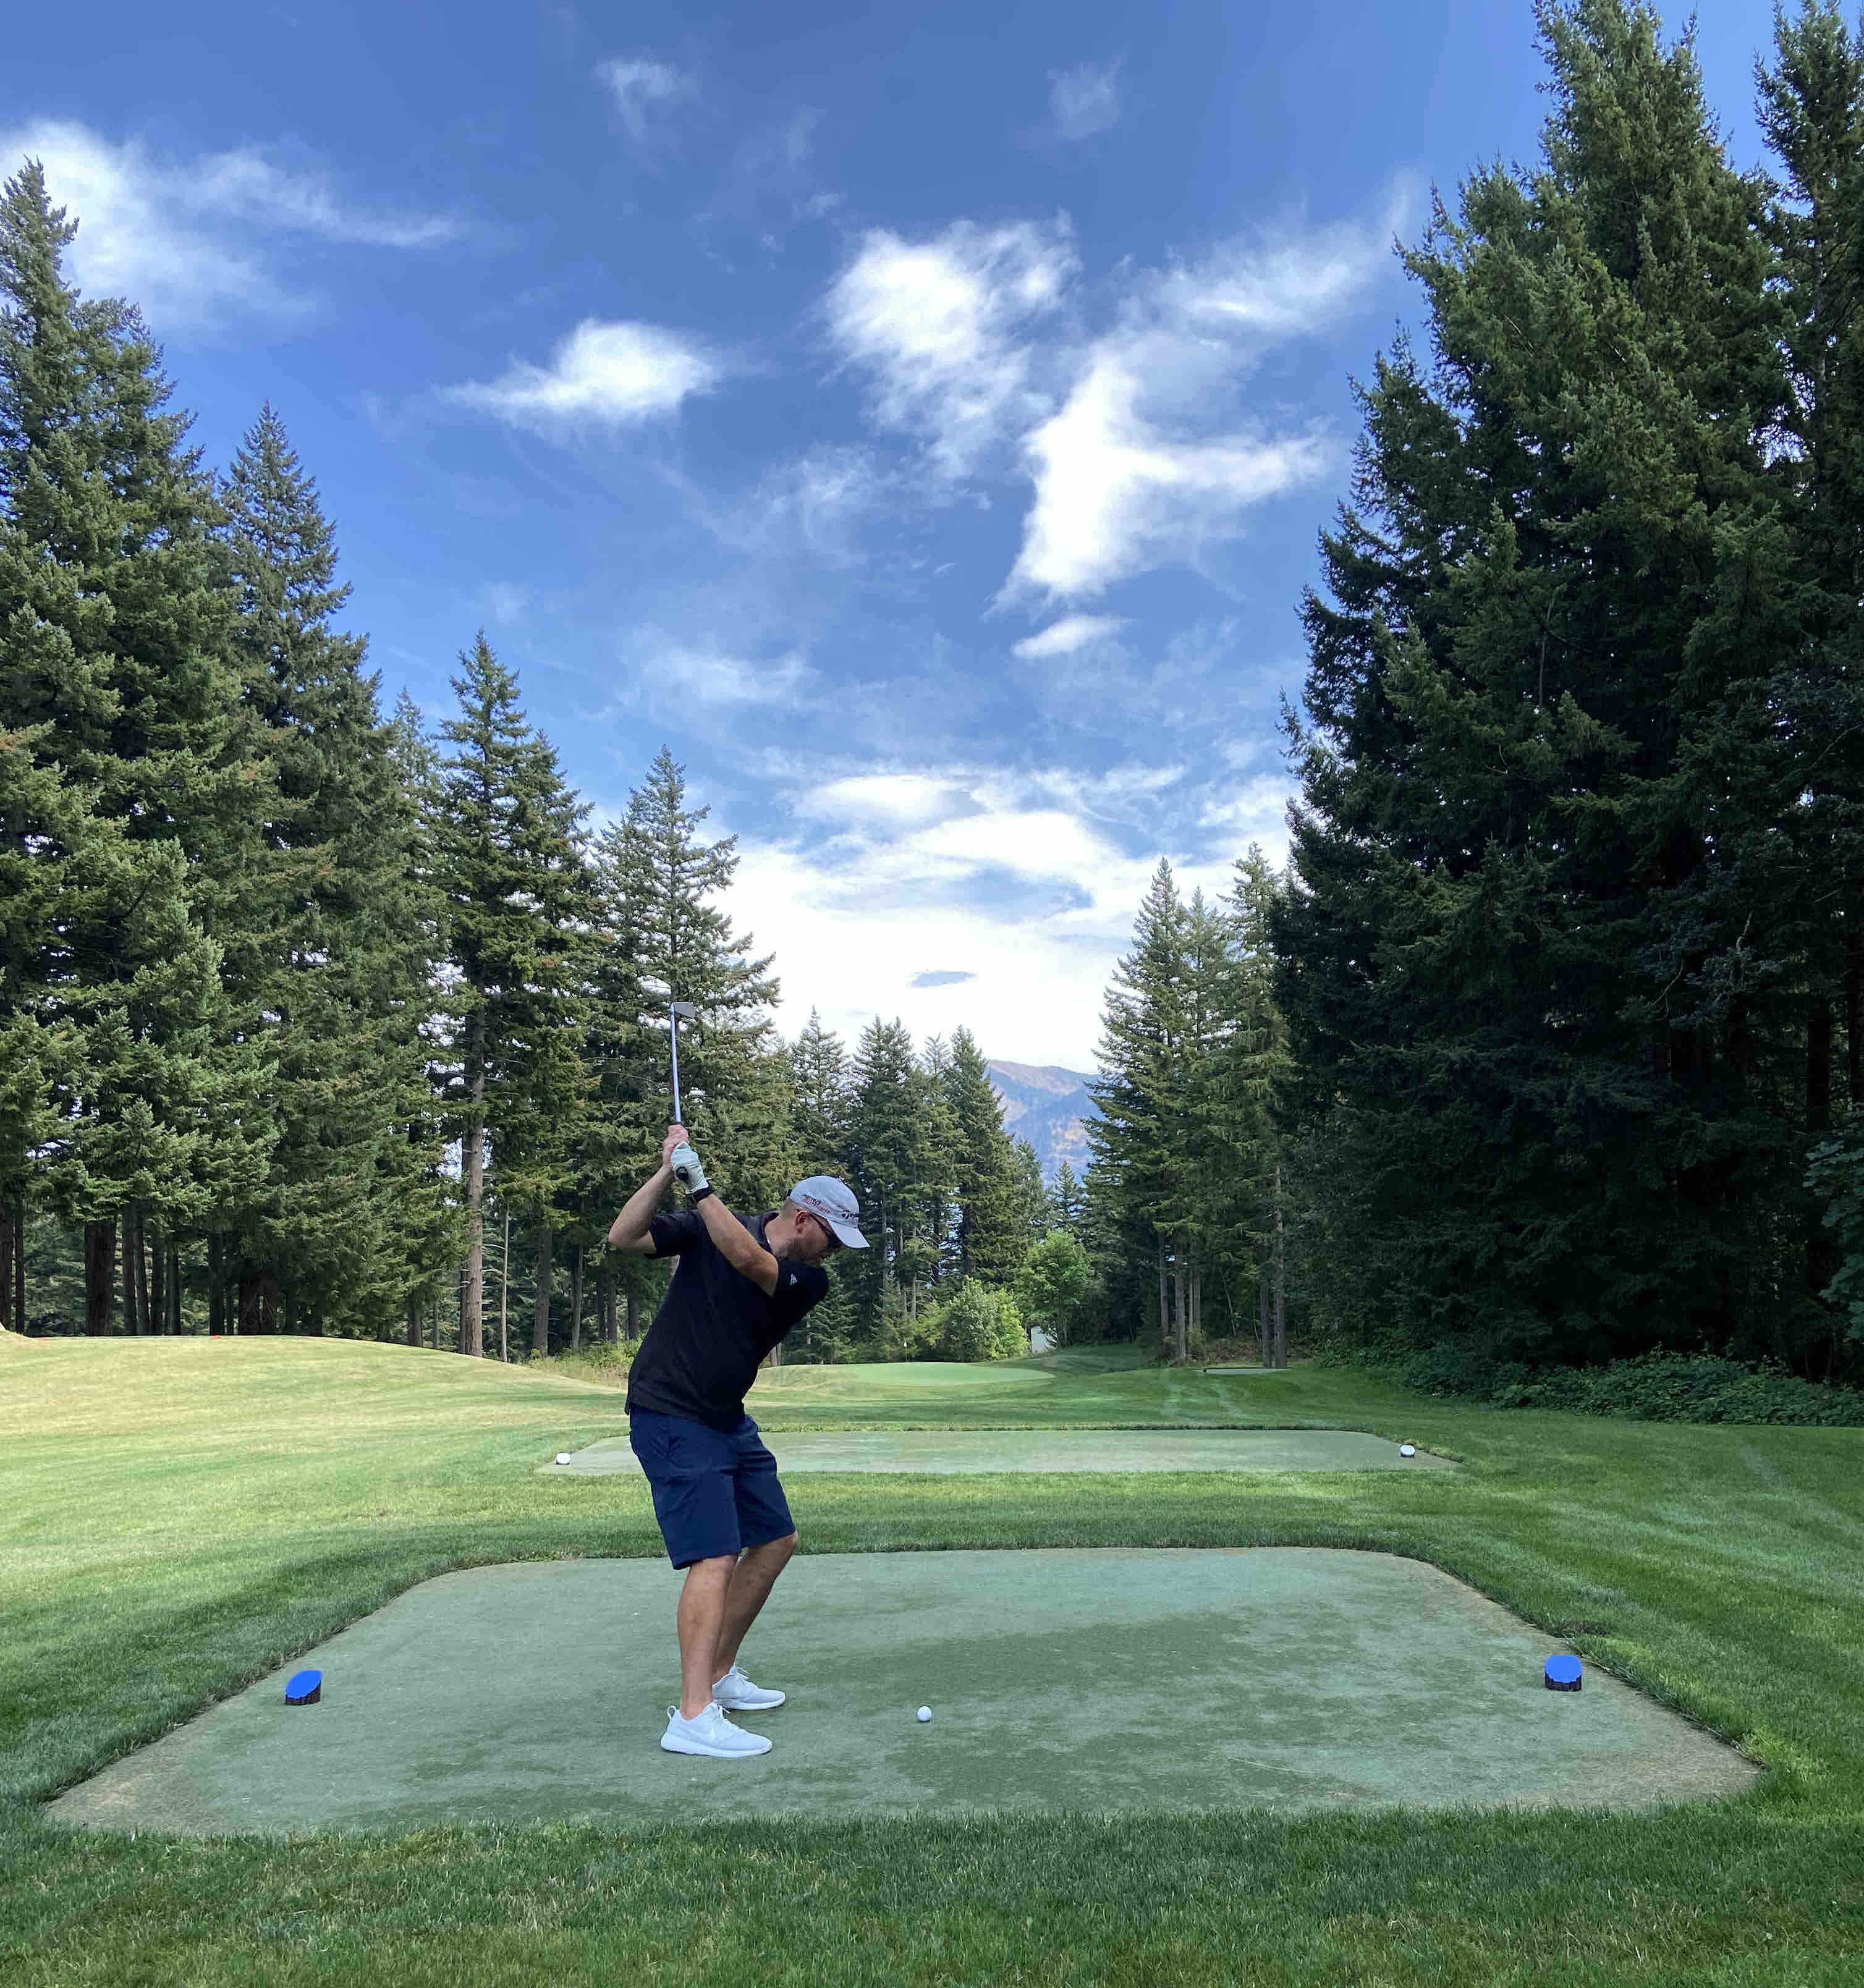 Teeing off from the blues at The Gorge 9 at Skamania Lodge.